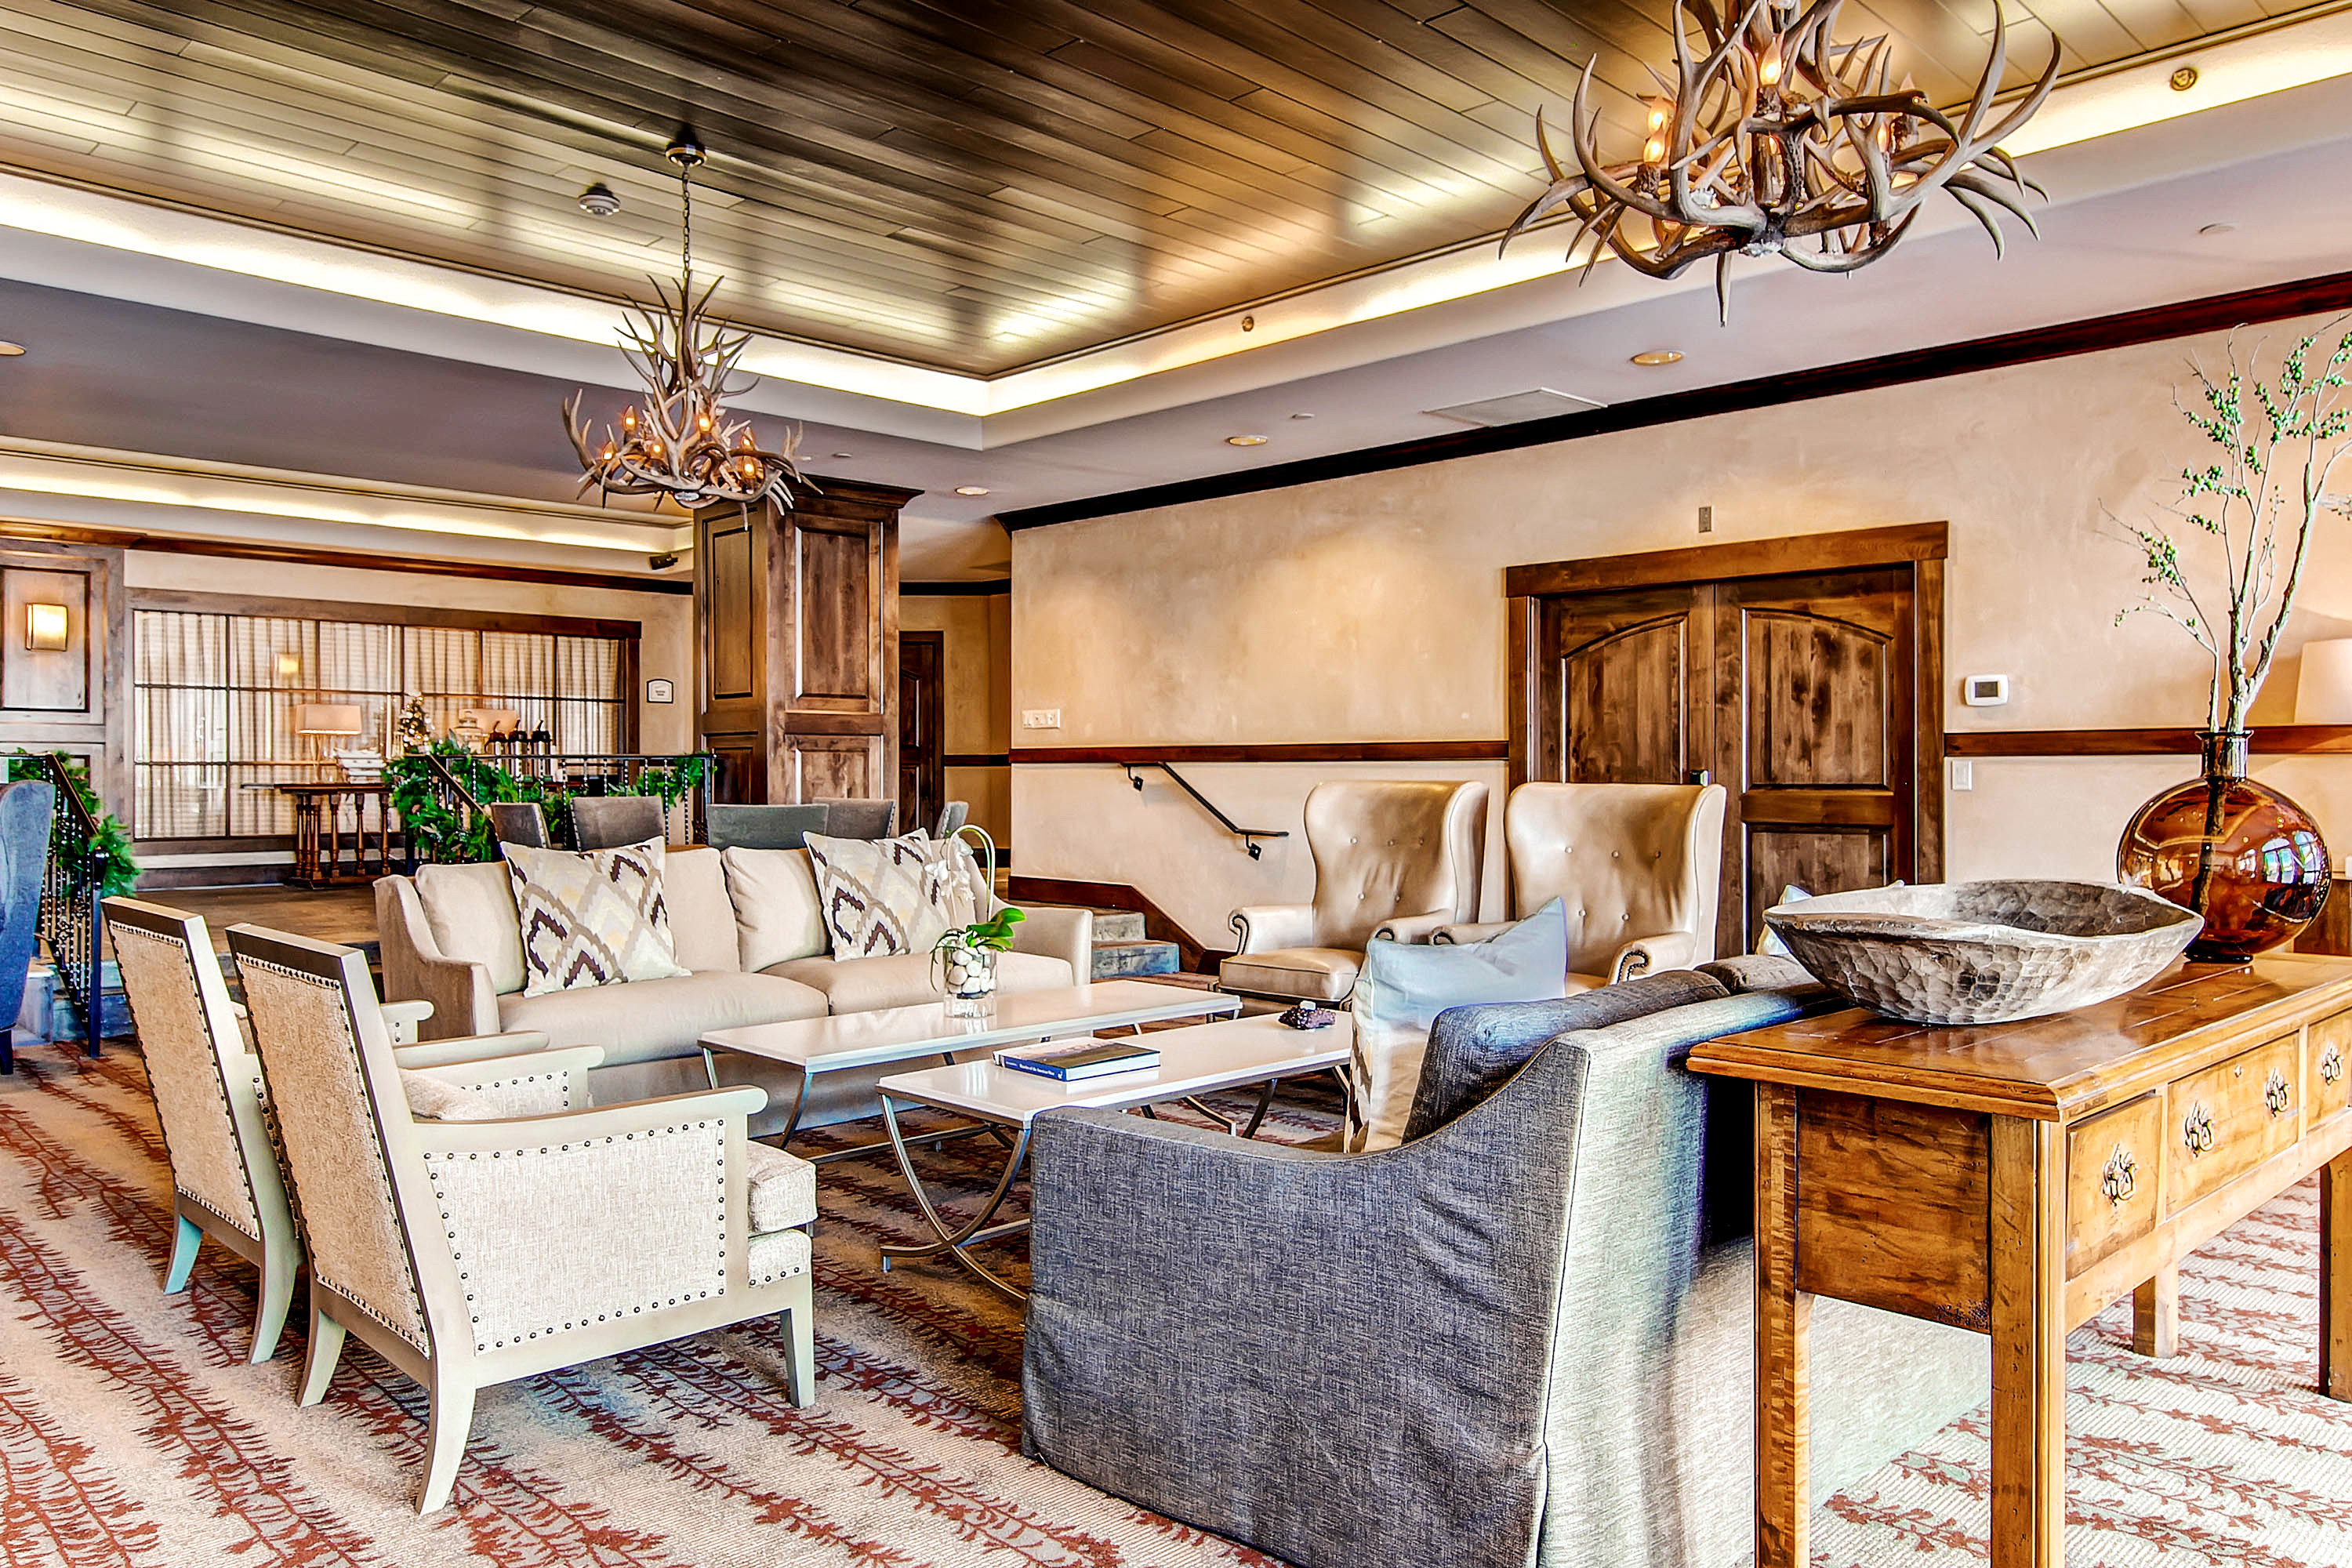 Classic Lodge Lounge Outdoor Activities Resort Ski property living room home cottage Suite farmhouse mansion